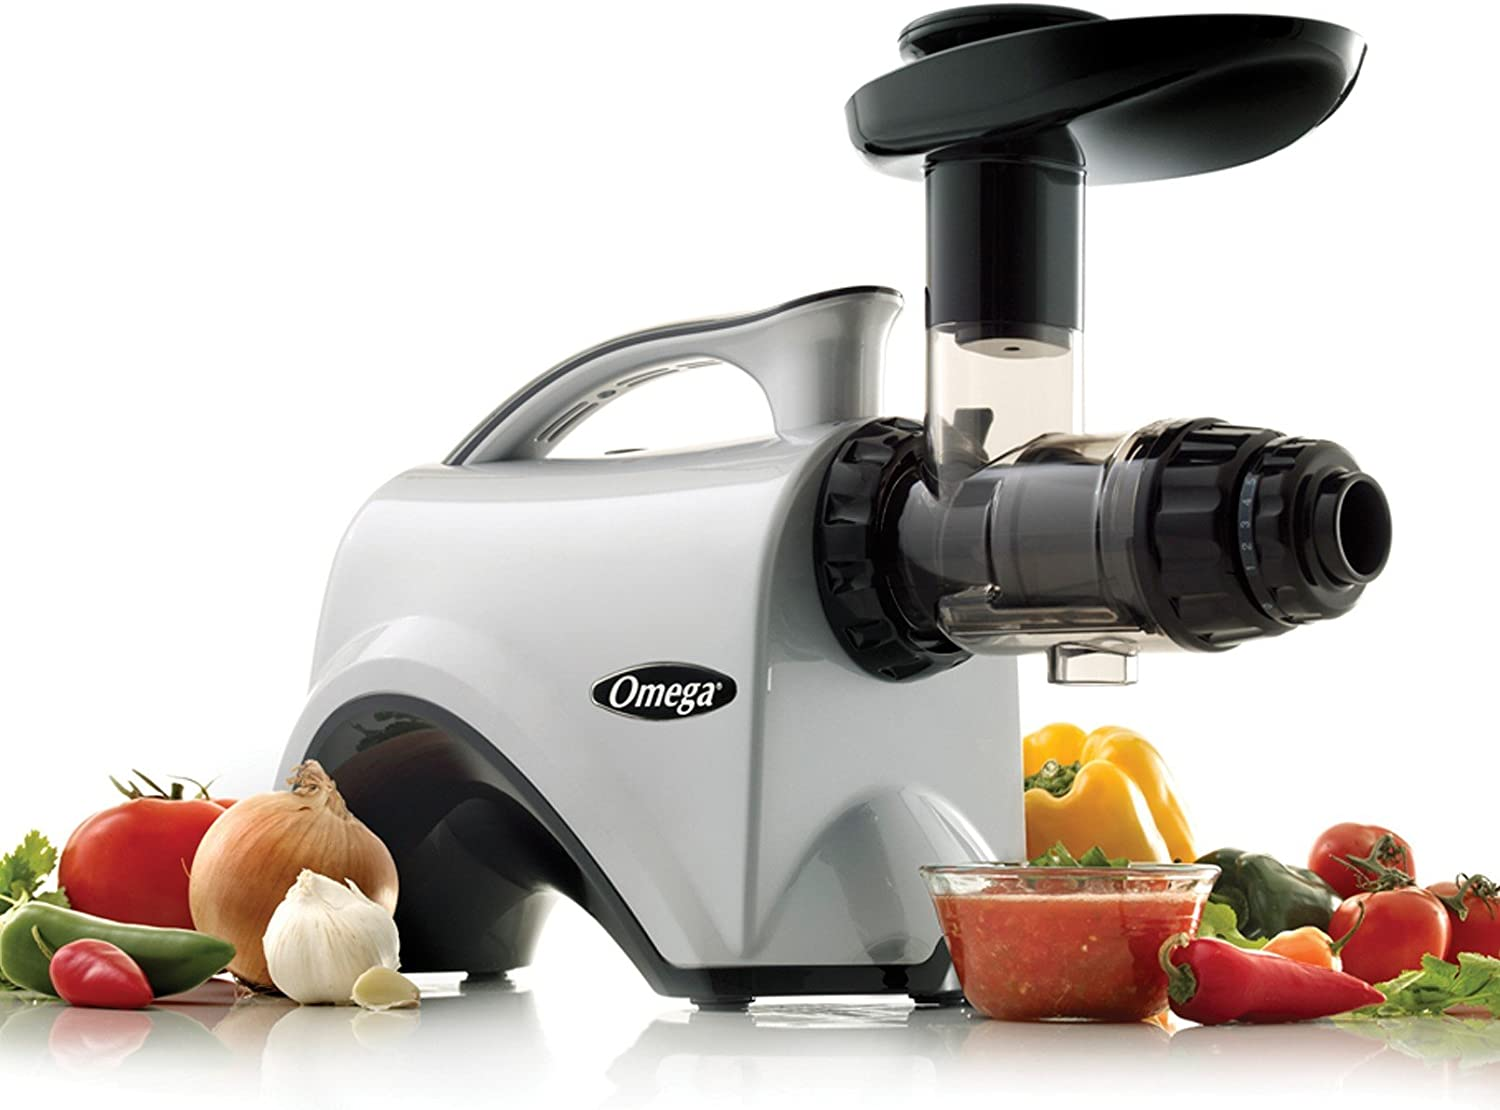 71uOcGC sCL. AC SL1500 Best Juicers for Tomatoes 2021 - Reviews & Buying Guide